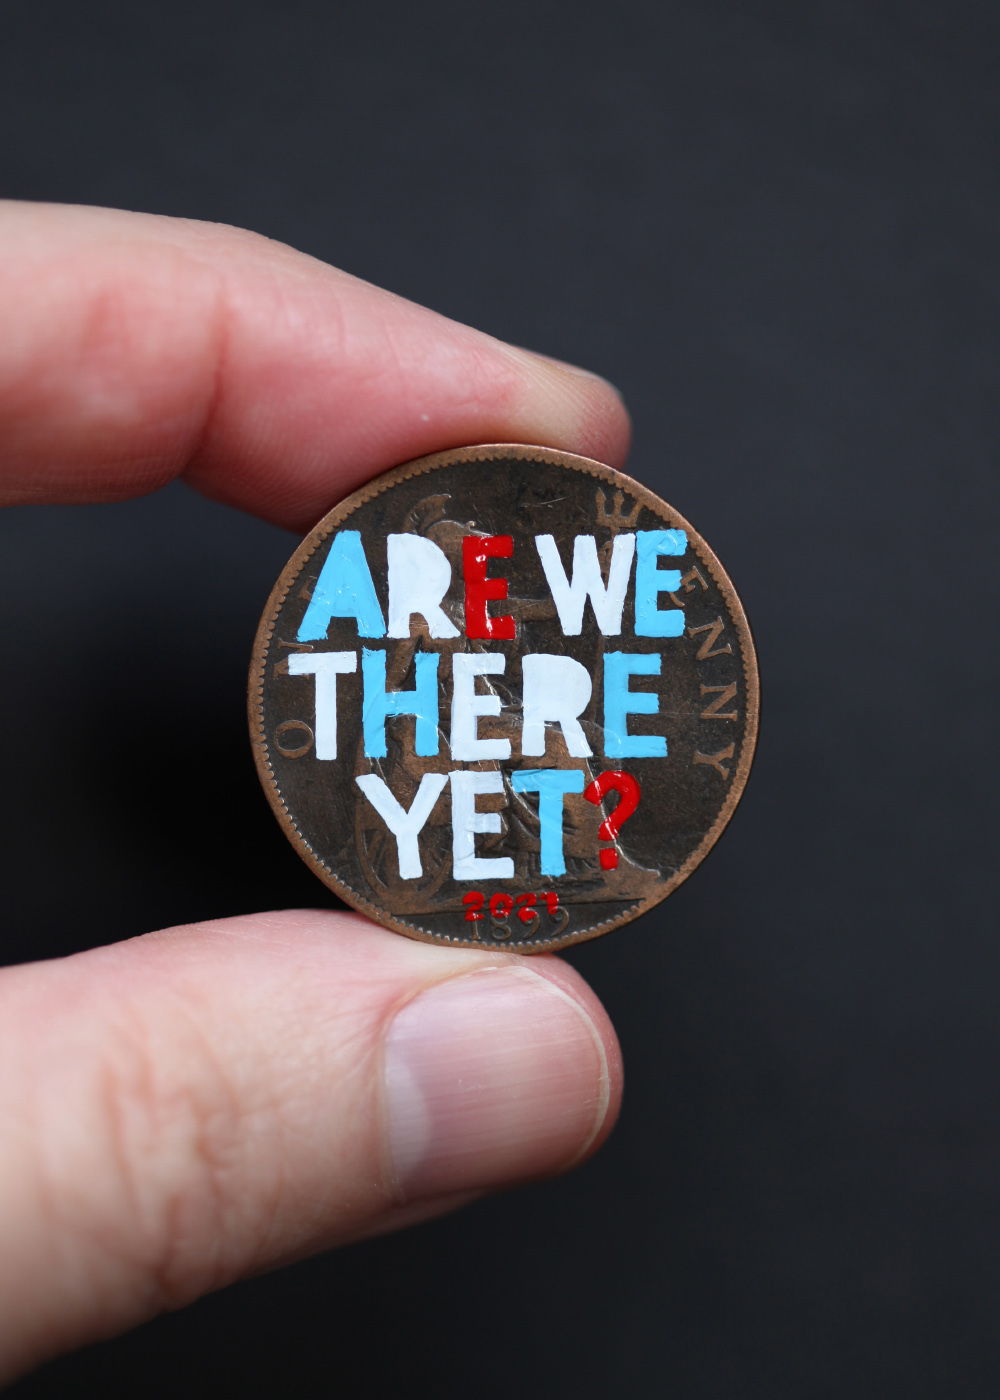 Quiet British Accent Penny art with the words Are we there yet painted on the penny